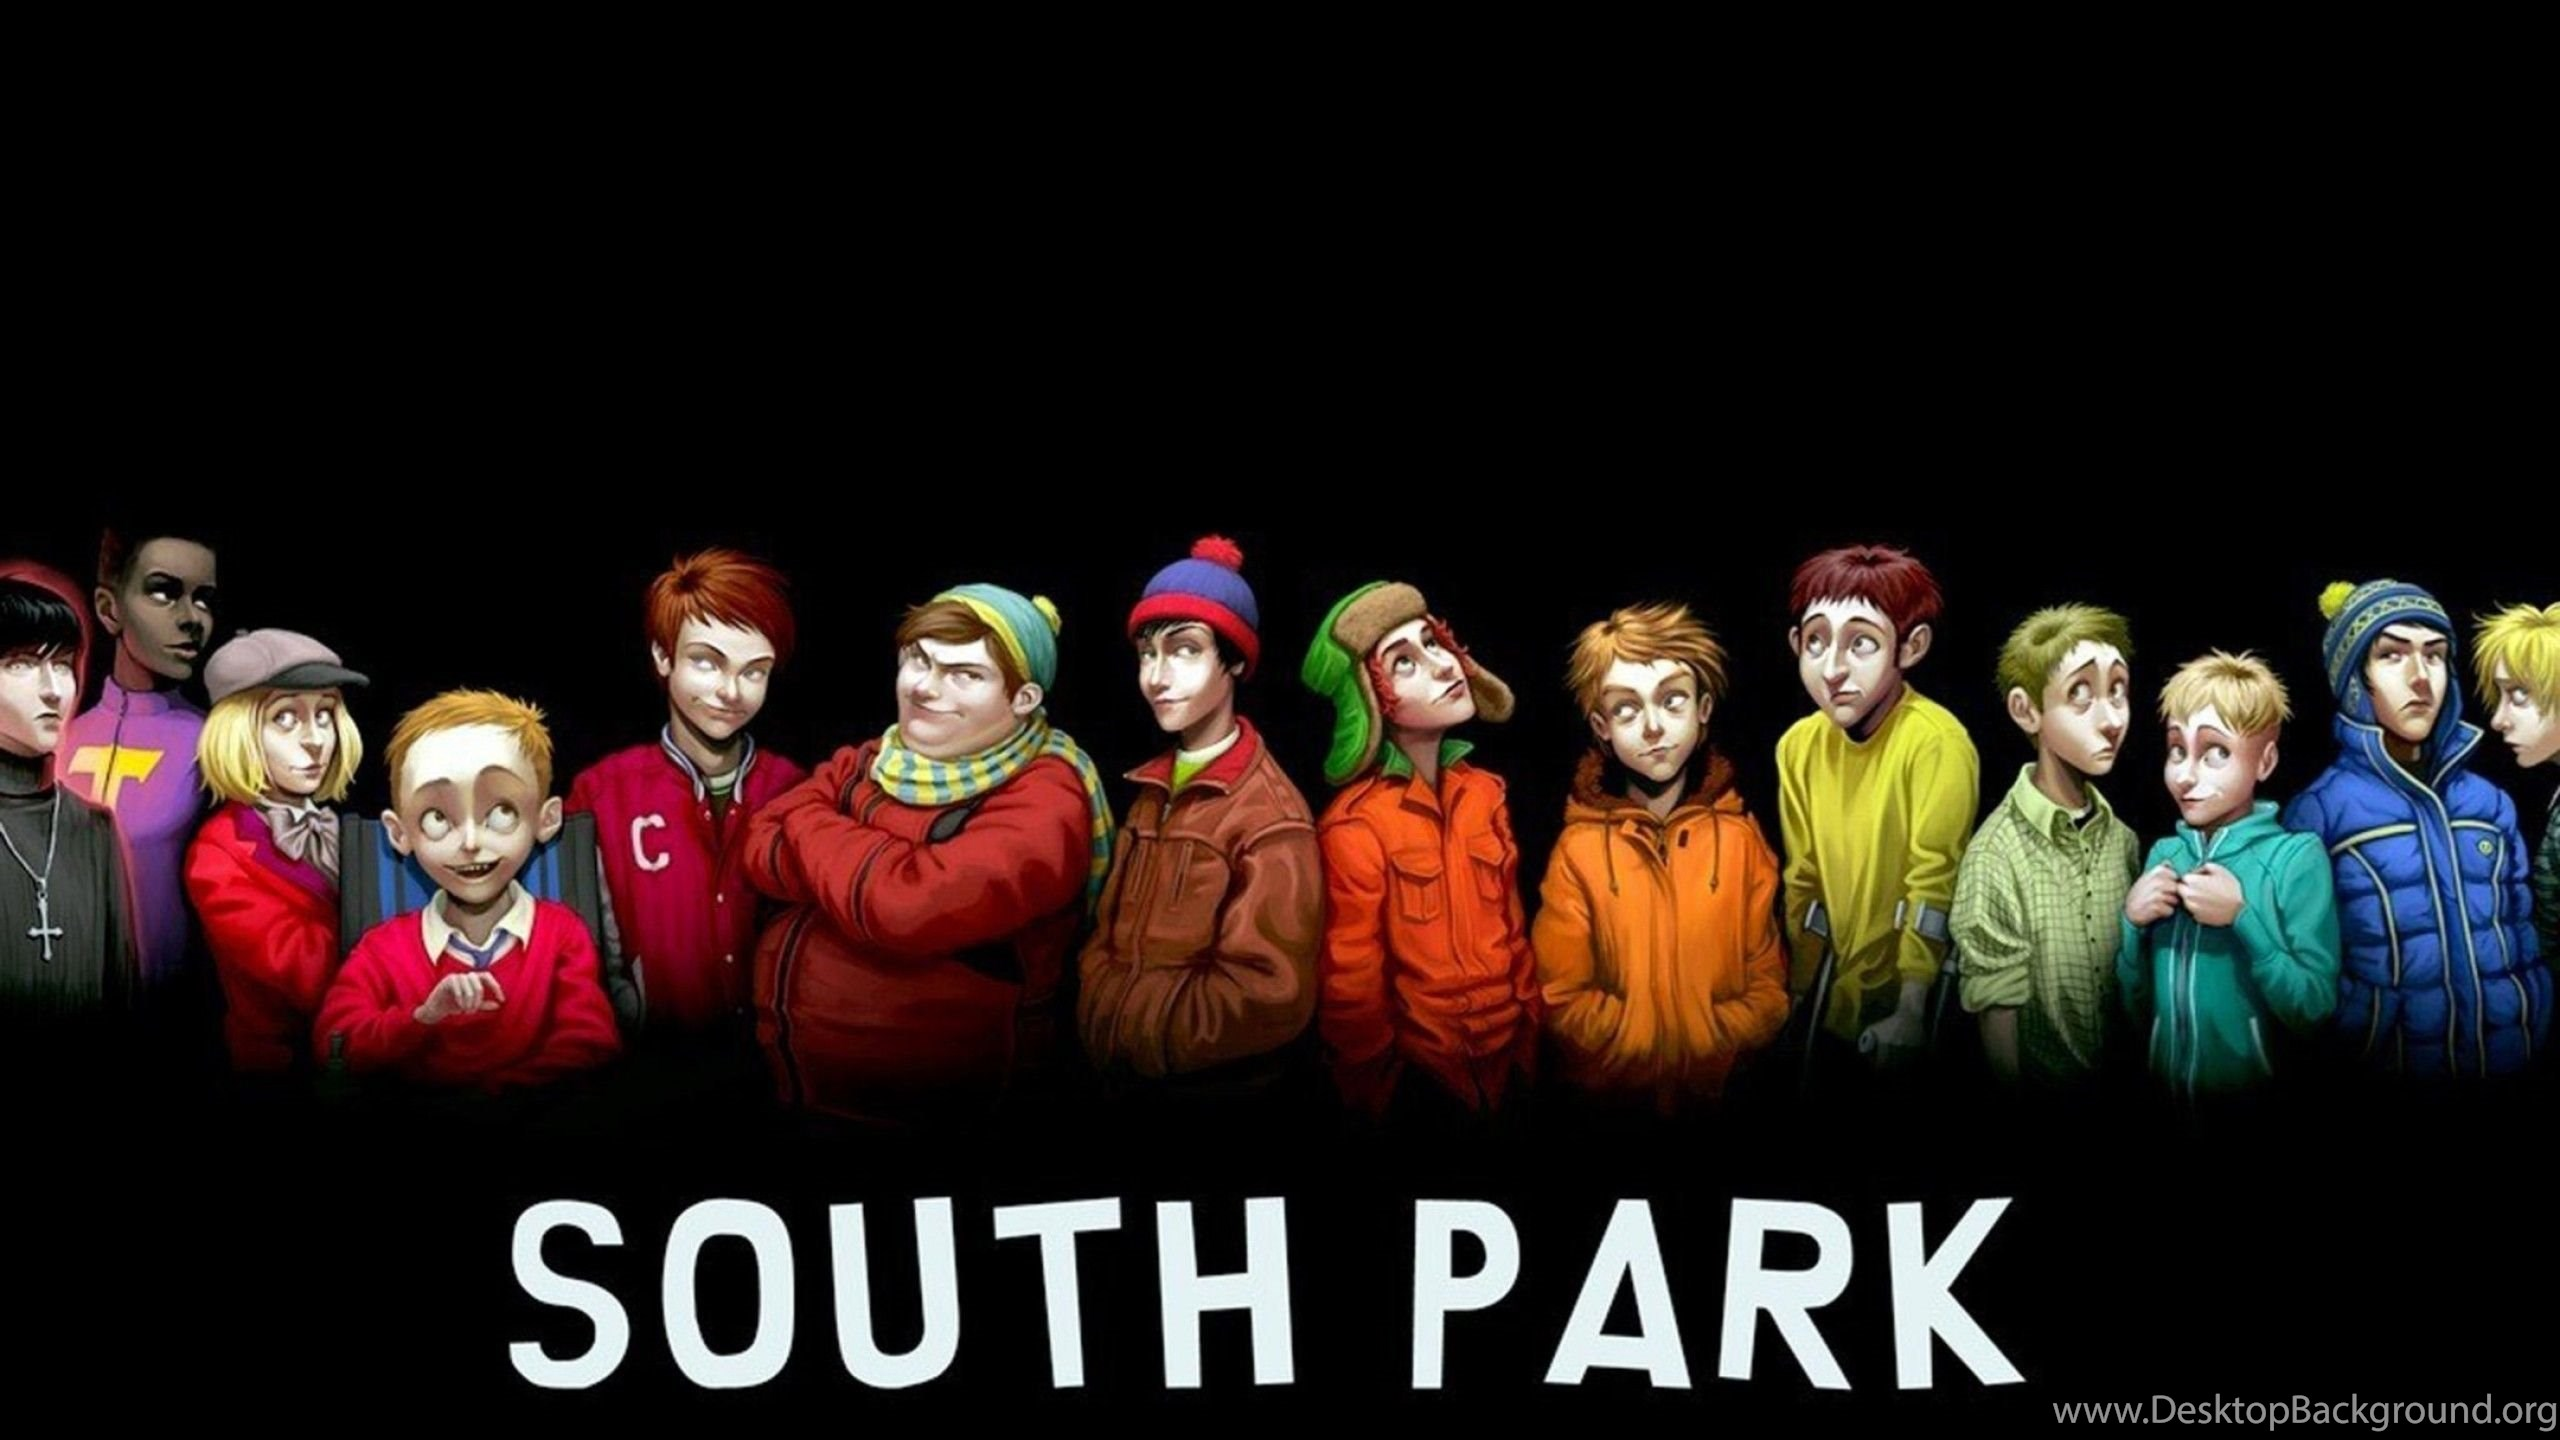 Tumblr South Park Funny Characters 2560x1440 HD Wallpapers And